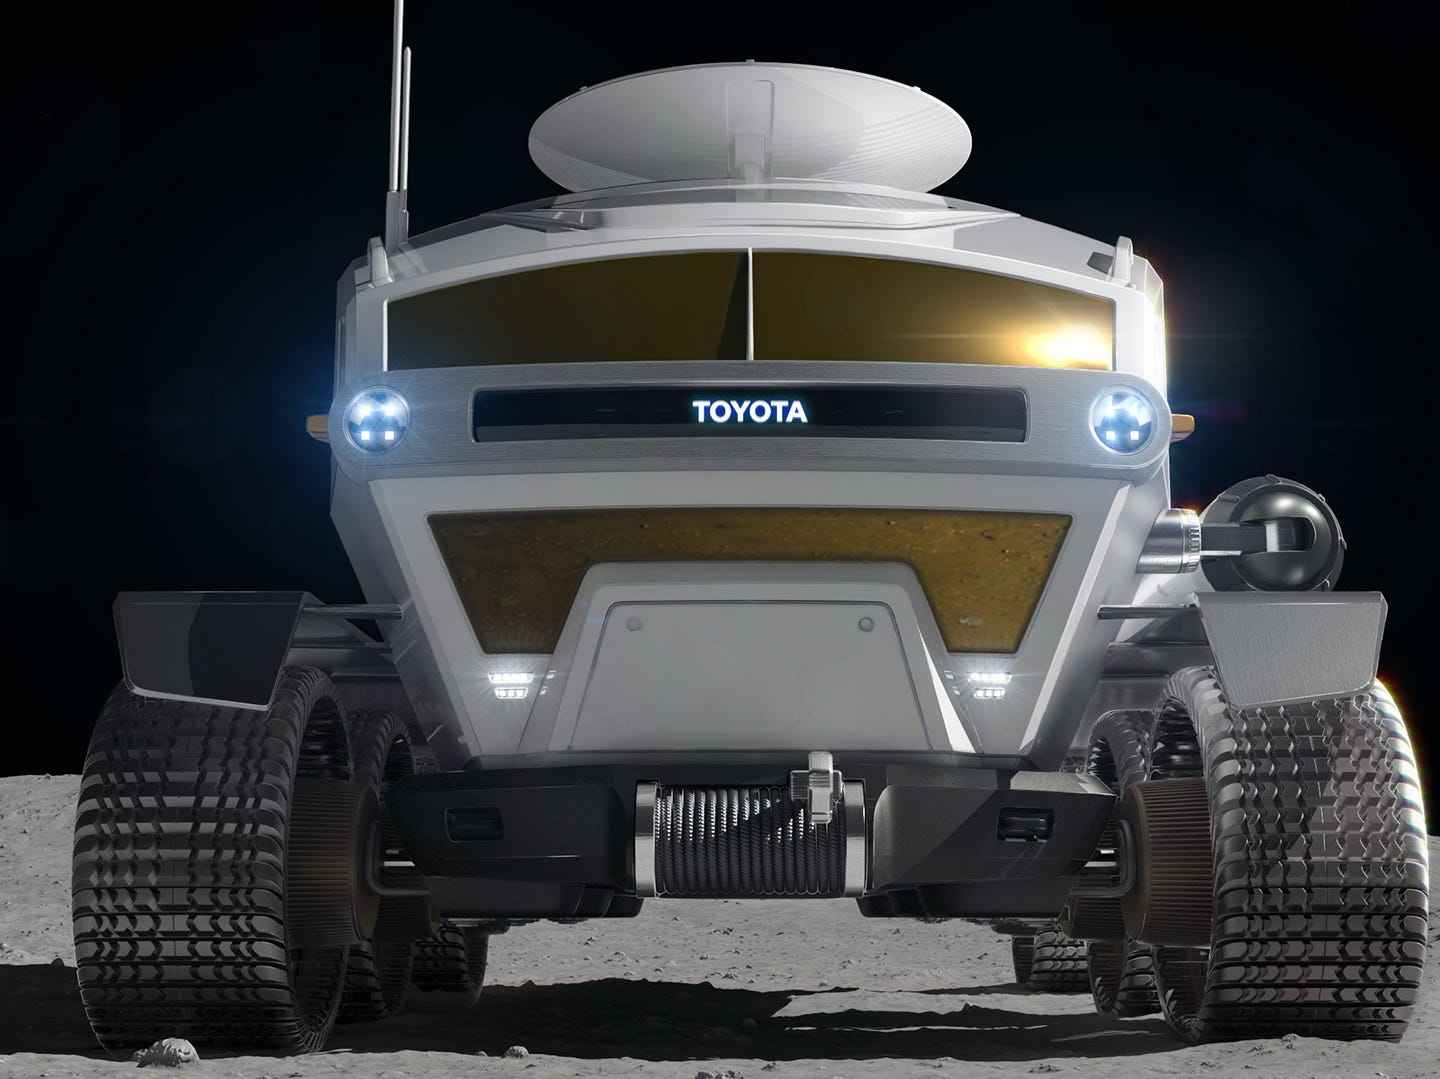 The goal is to achieve a sustainable future on the moon, and eventually Mars.